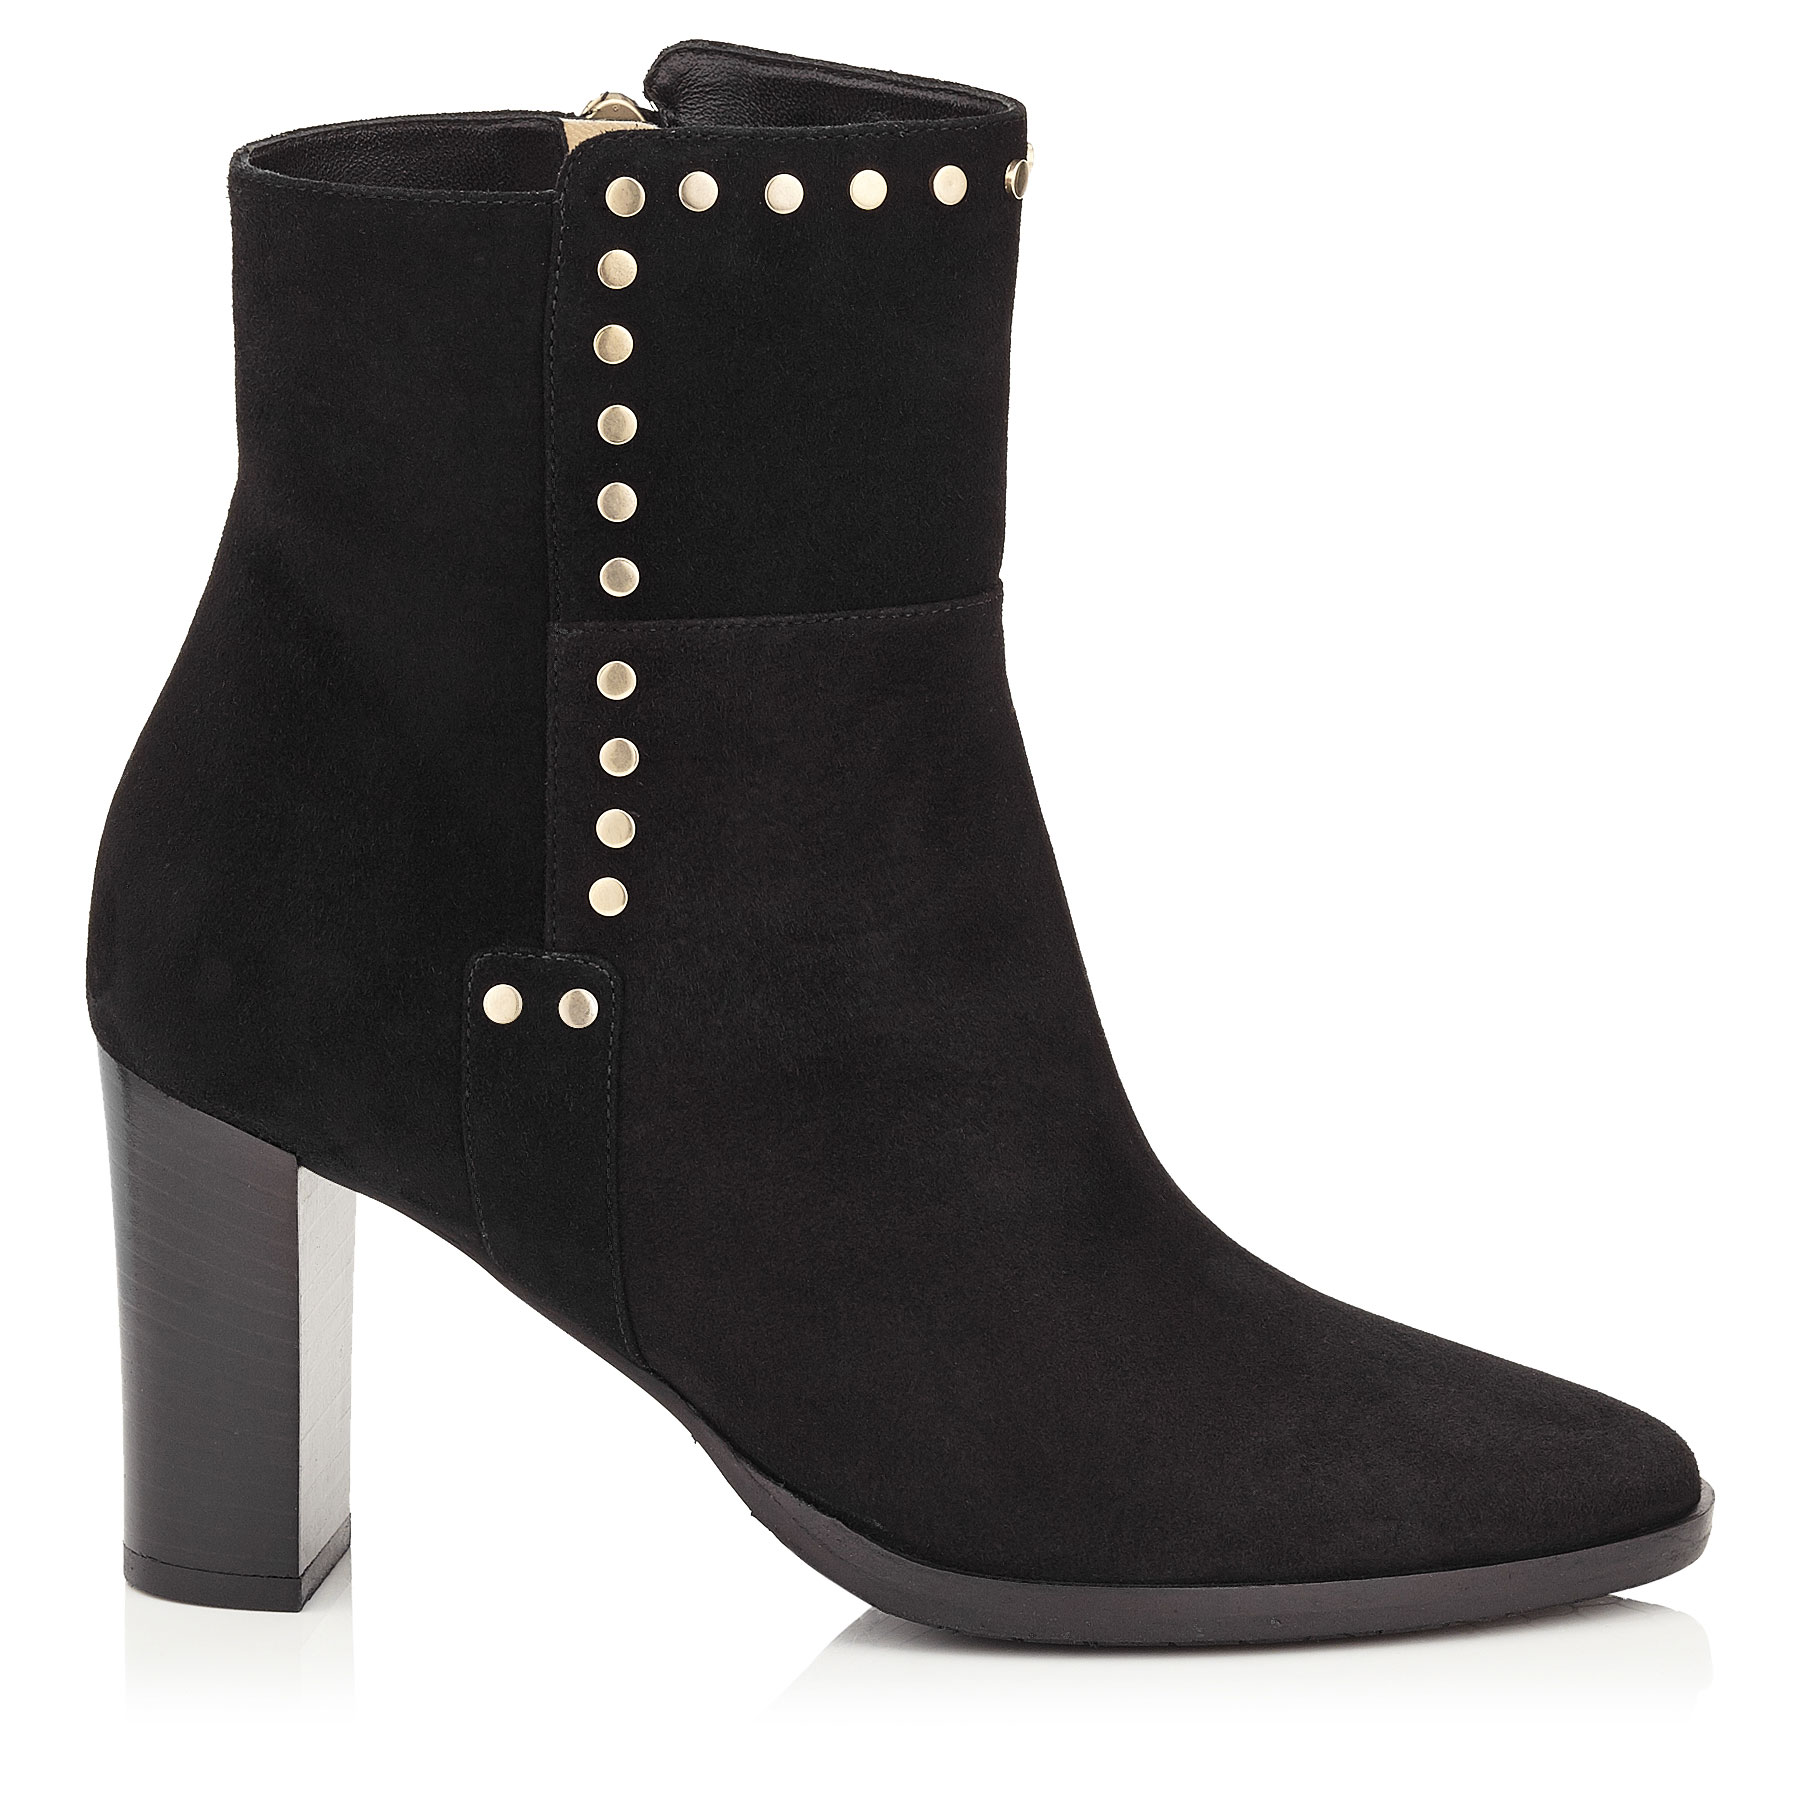 HARLOW 80 Black Suede Boots with Stud Trim by Jimmy Choo